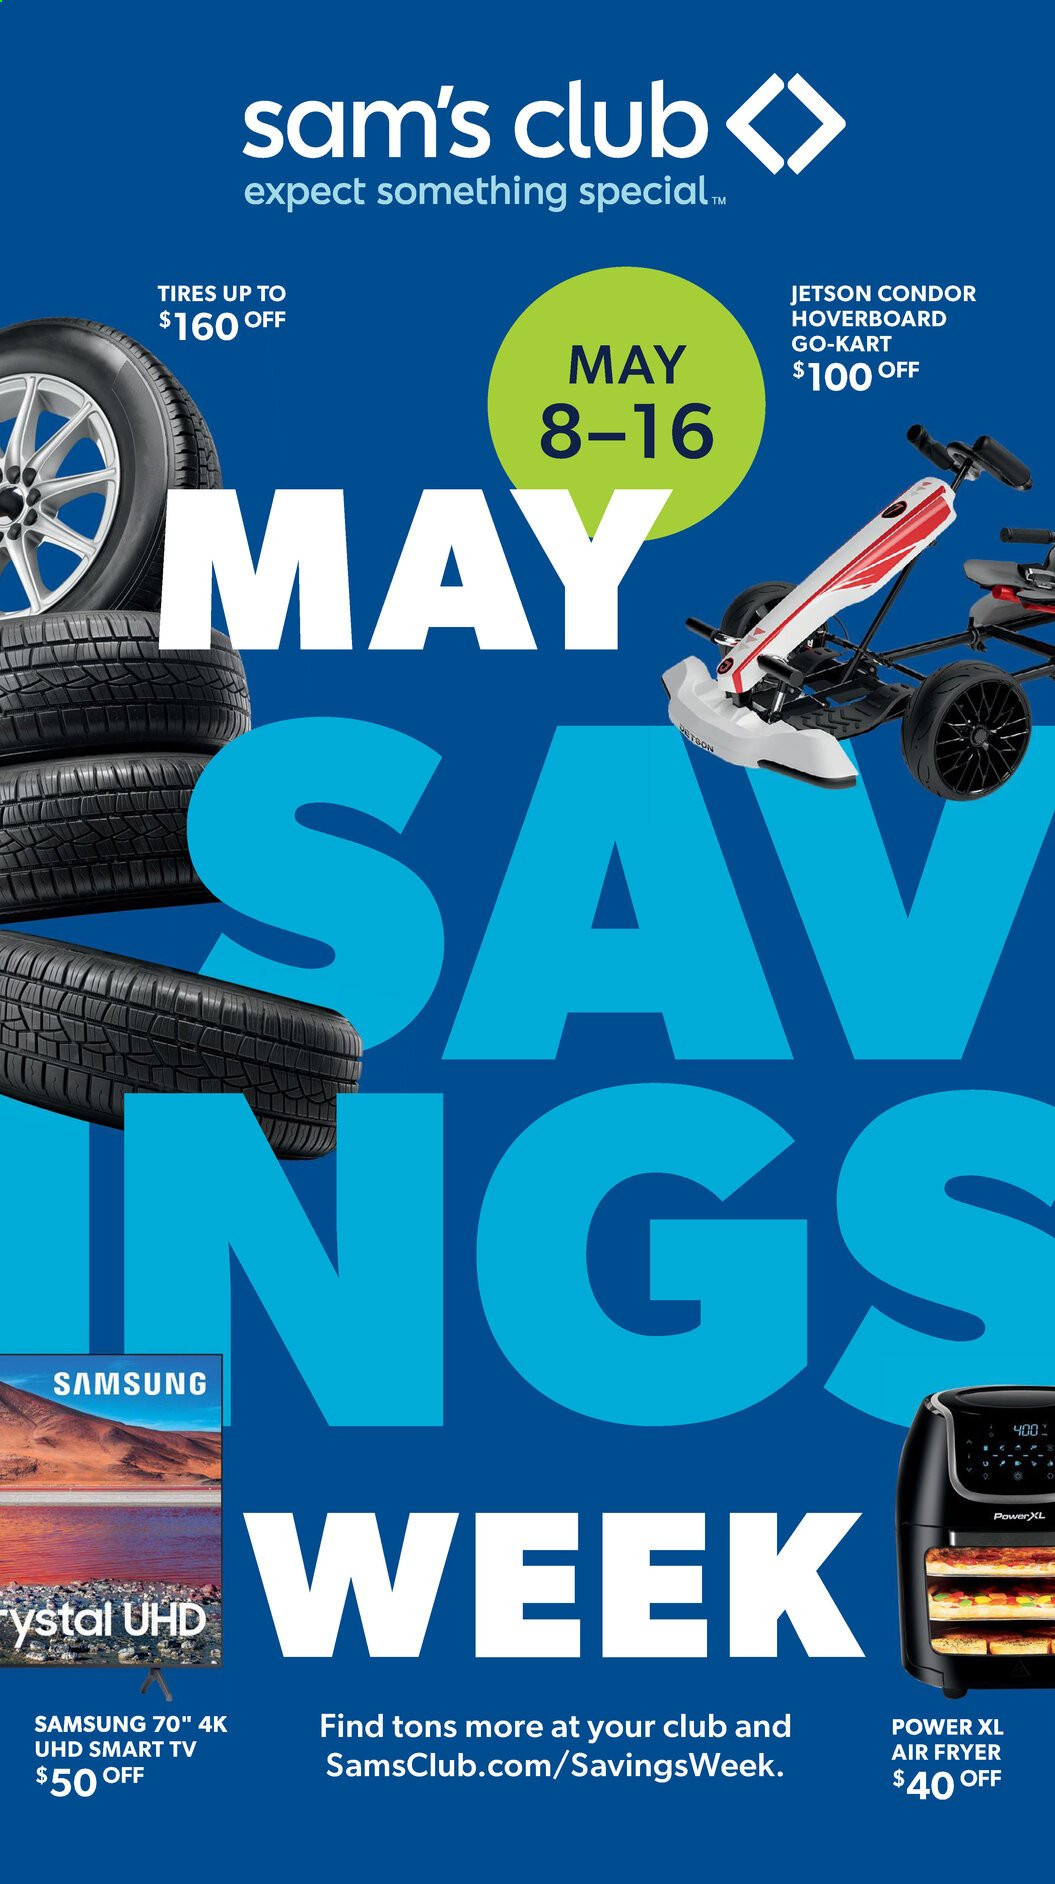 Sam's Club Ad from may 8 to 16 2021